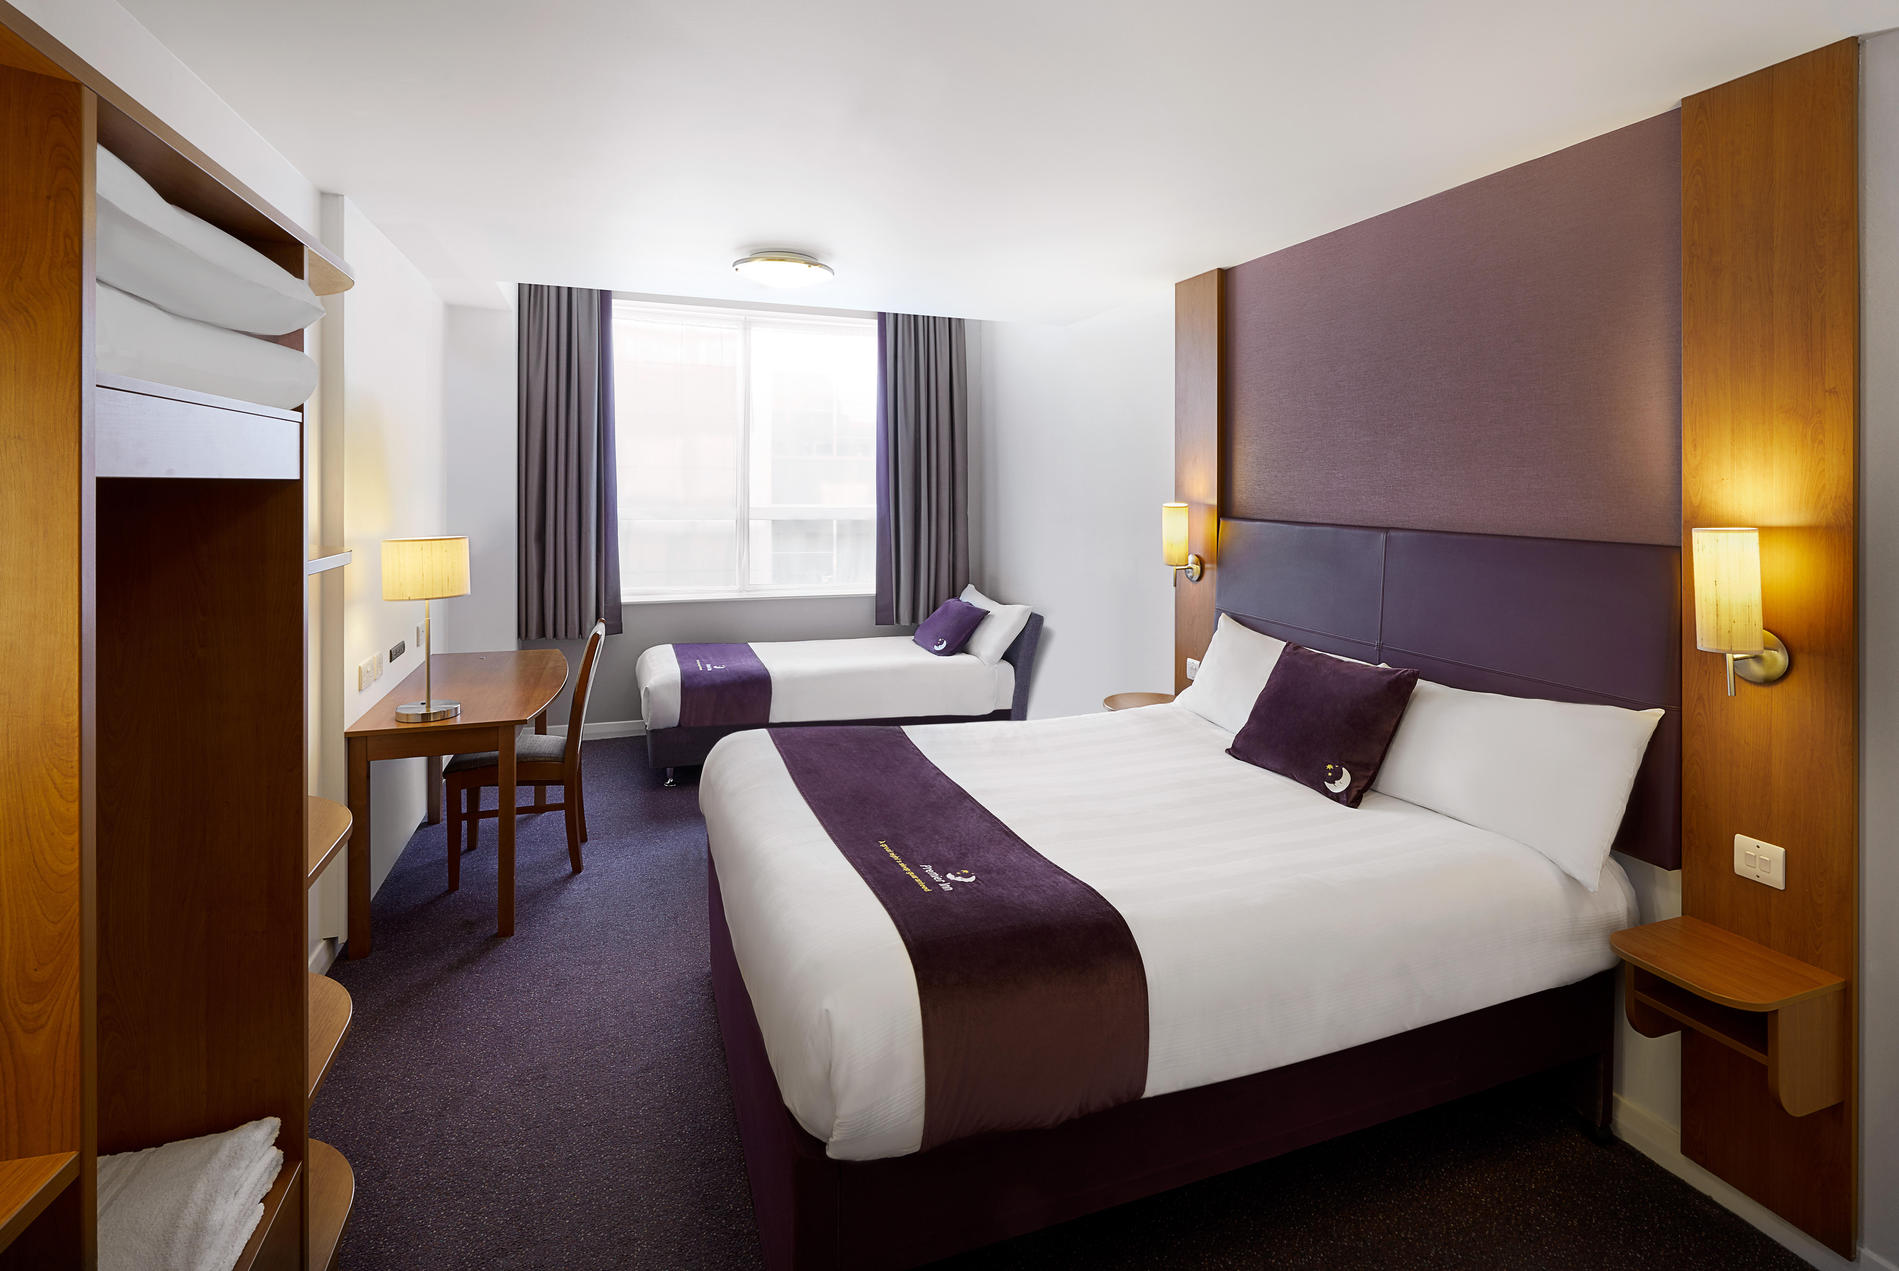 Premier Inn twin room with double bed and single sofa bed